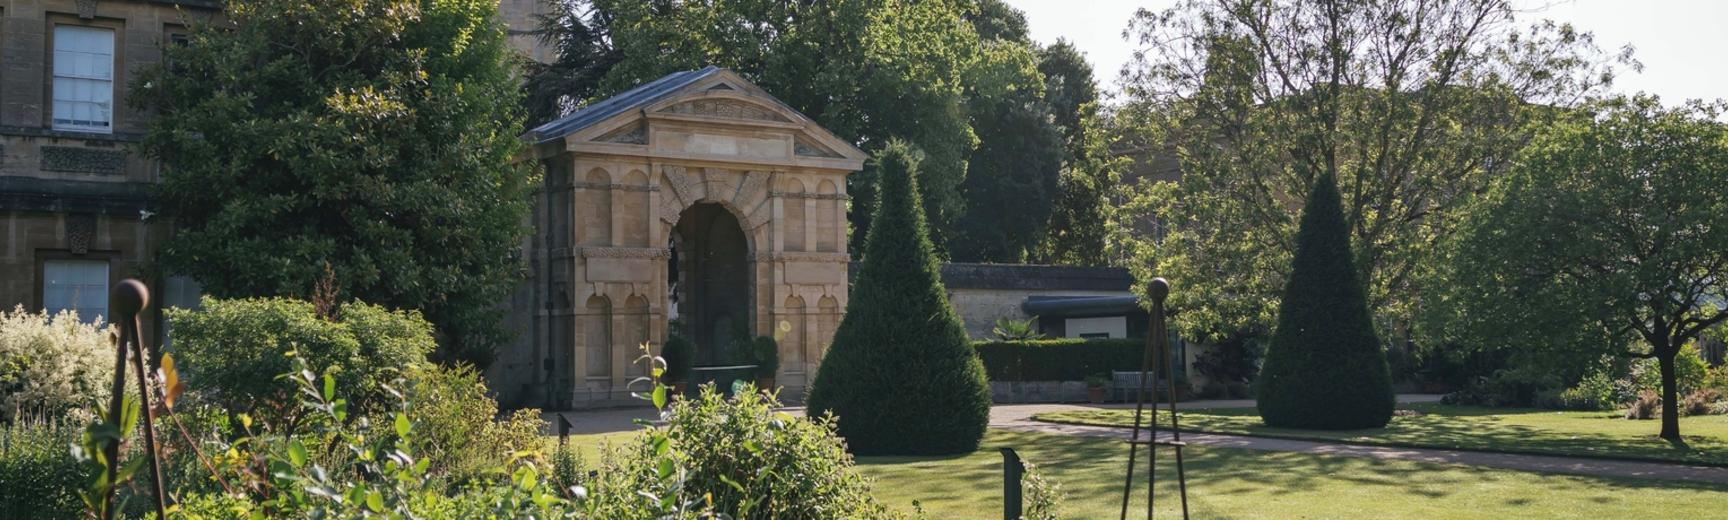 View of the Botanic Garden and its entrance arch